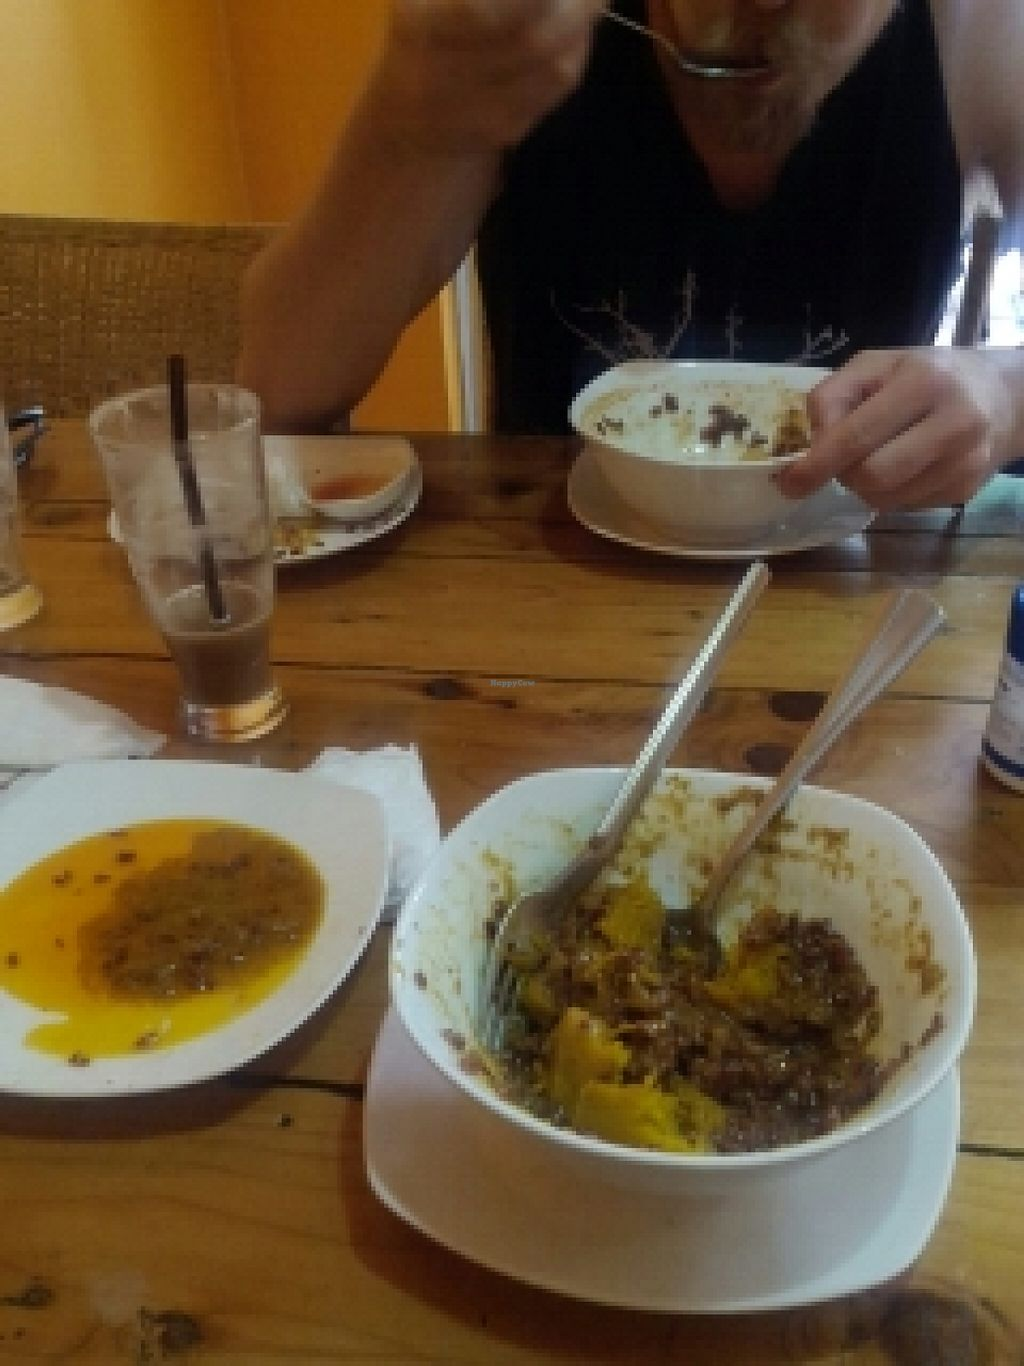 """Photo of Cafe Soleil  by <a href=""""/members/profile/Fairbridge"""">Fairbridge</a> <br/>pumpkin curry with a side of grease <br/> June 21, 2016  - <a href='/contact/abuse/image/33811/187246'>Report</a>"""